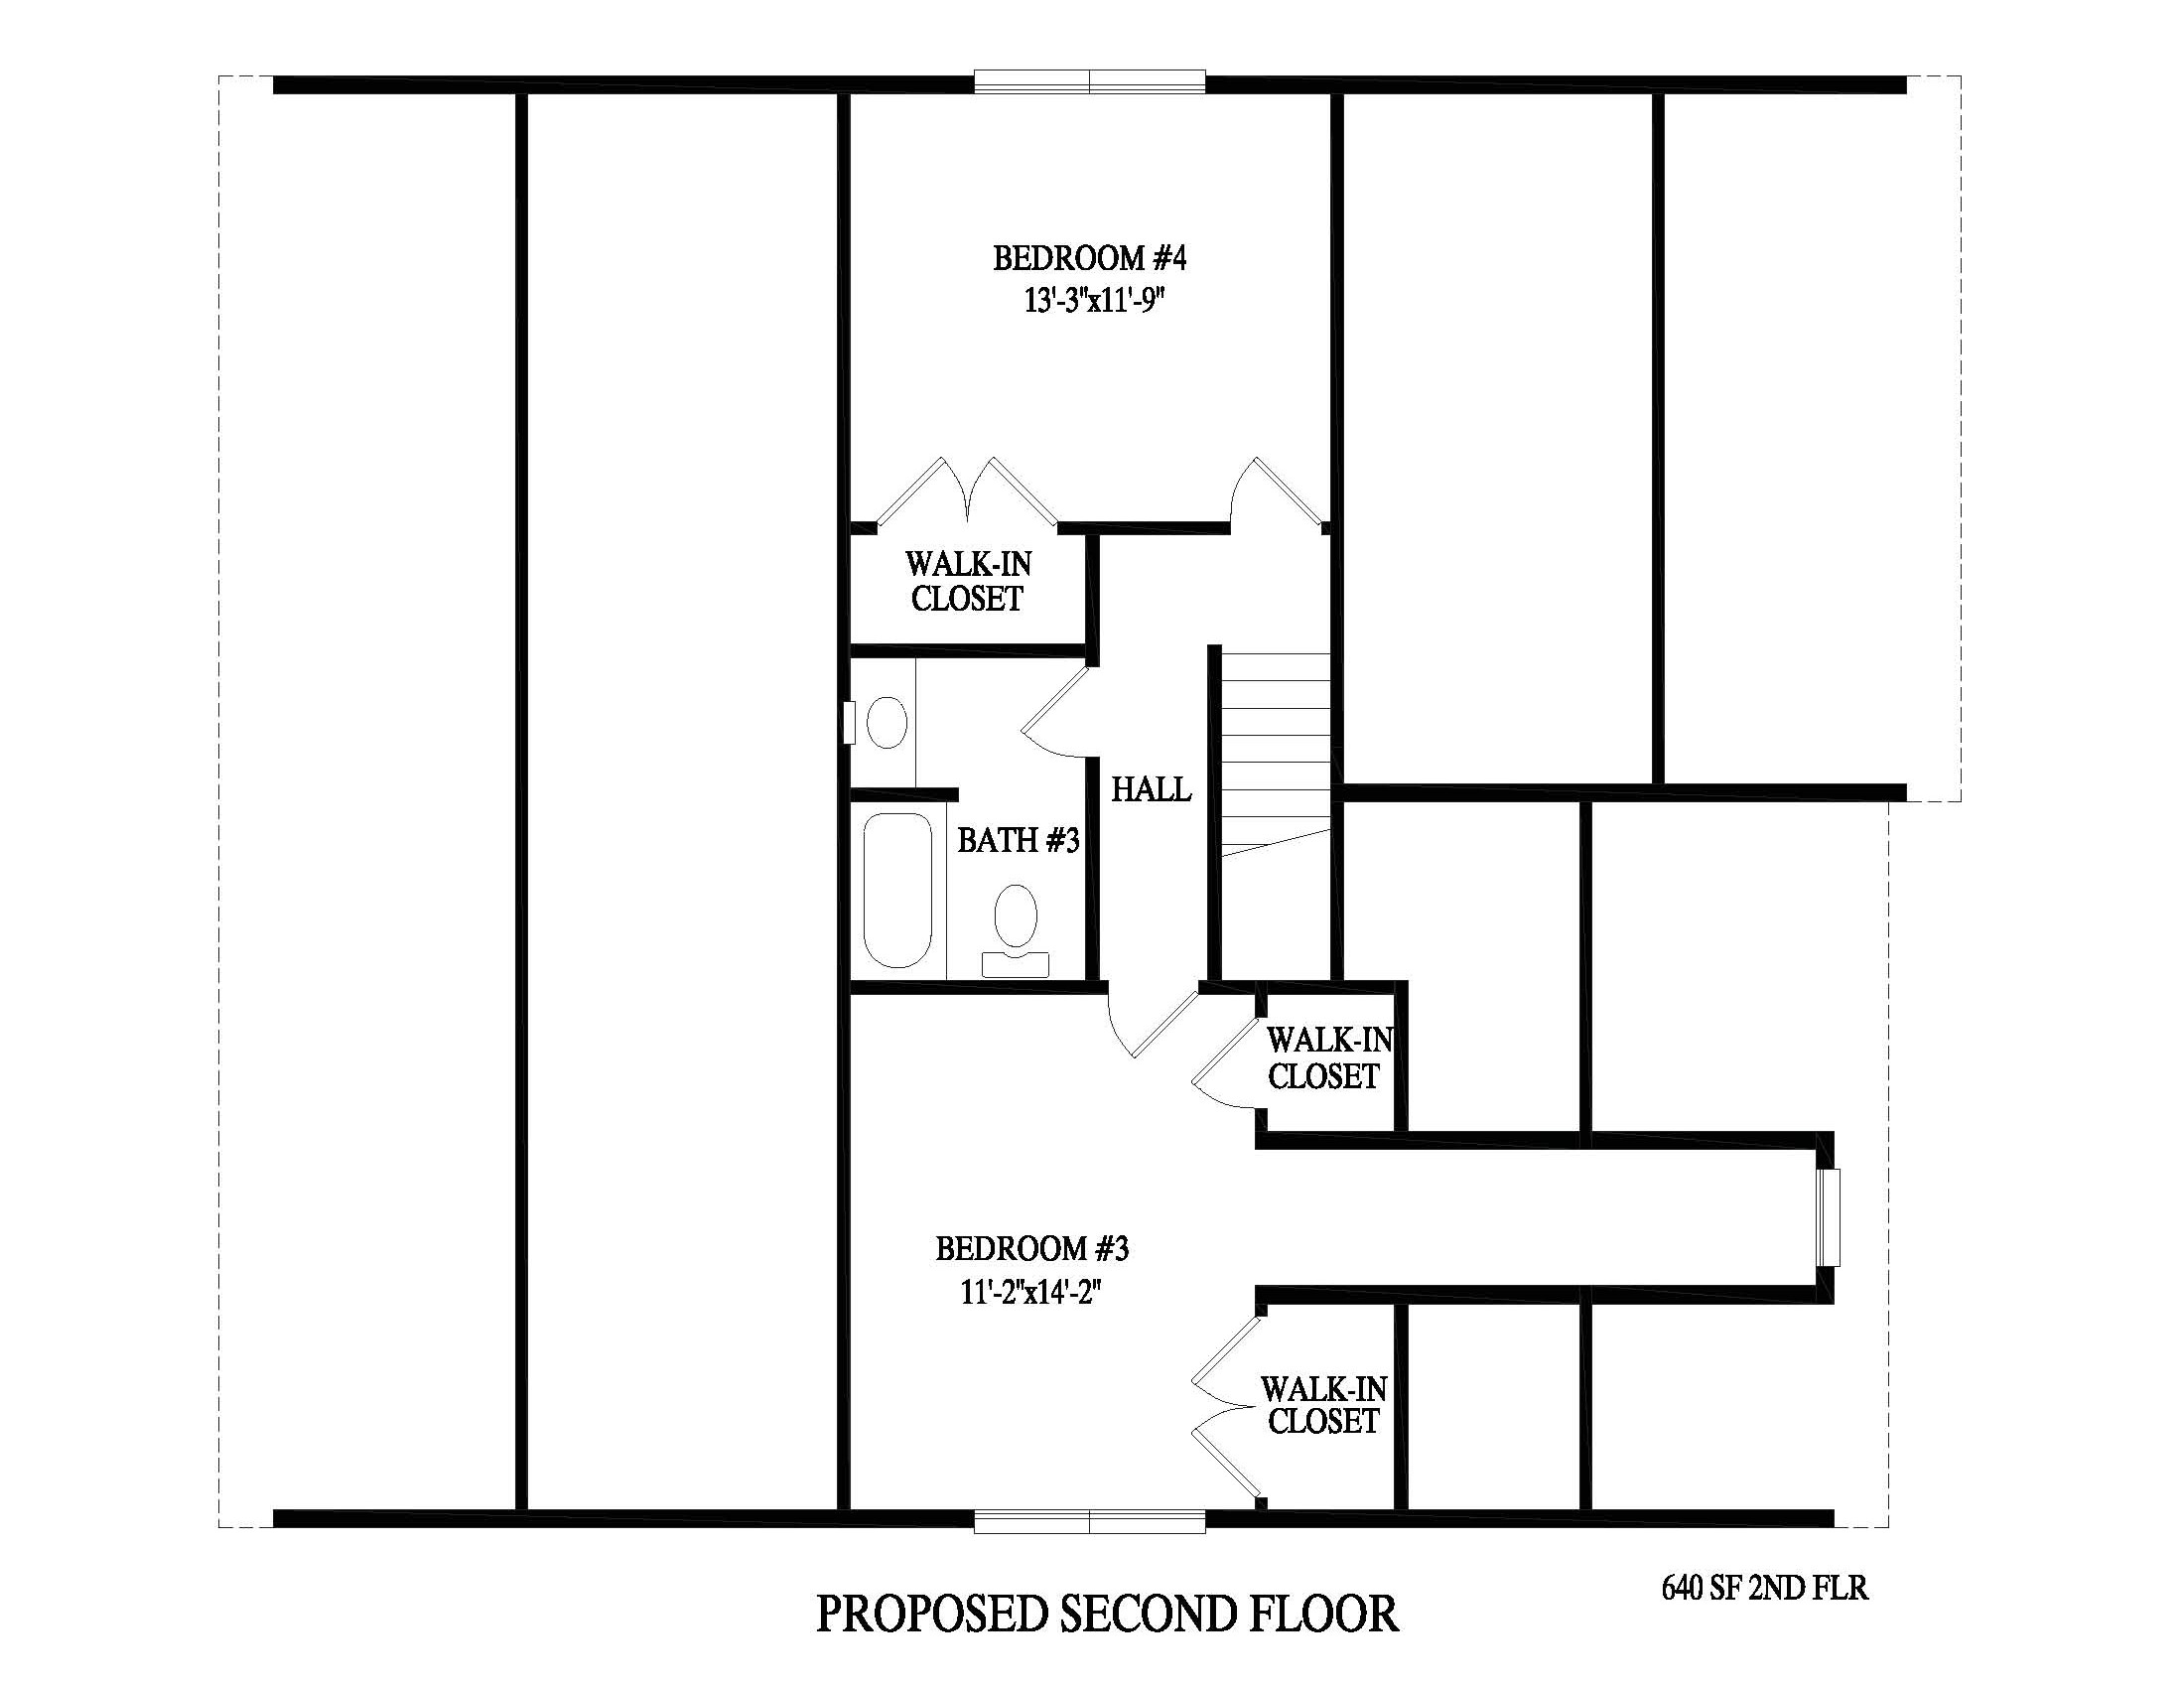 this https://www.pbsmodular.com/wp-content/uploads/2016/12/HEMLOCK-HILL-proposed-2nd-floor_2.jpg